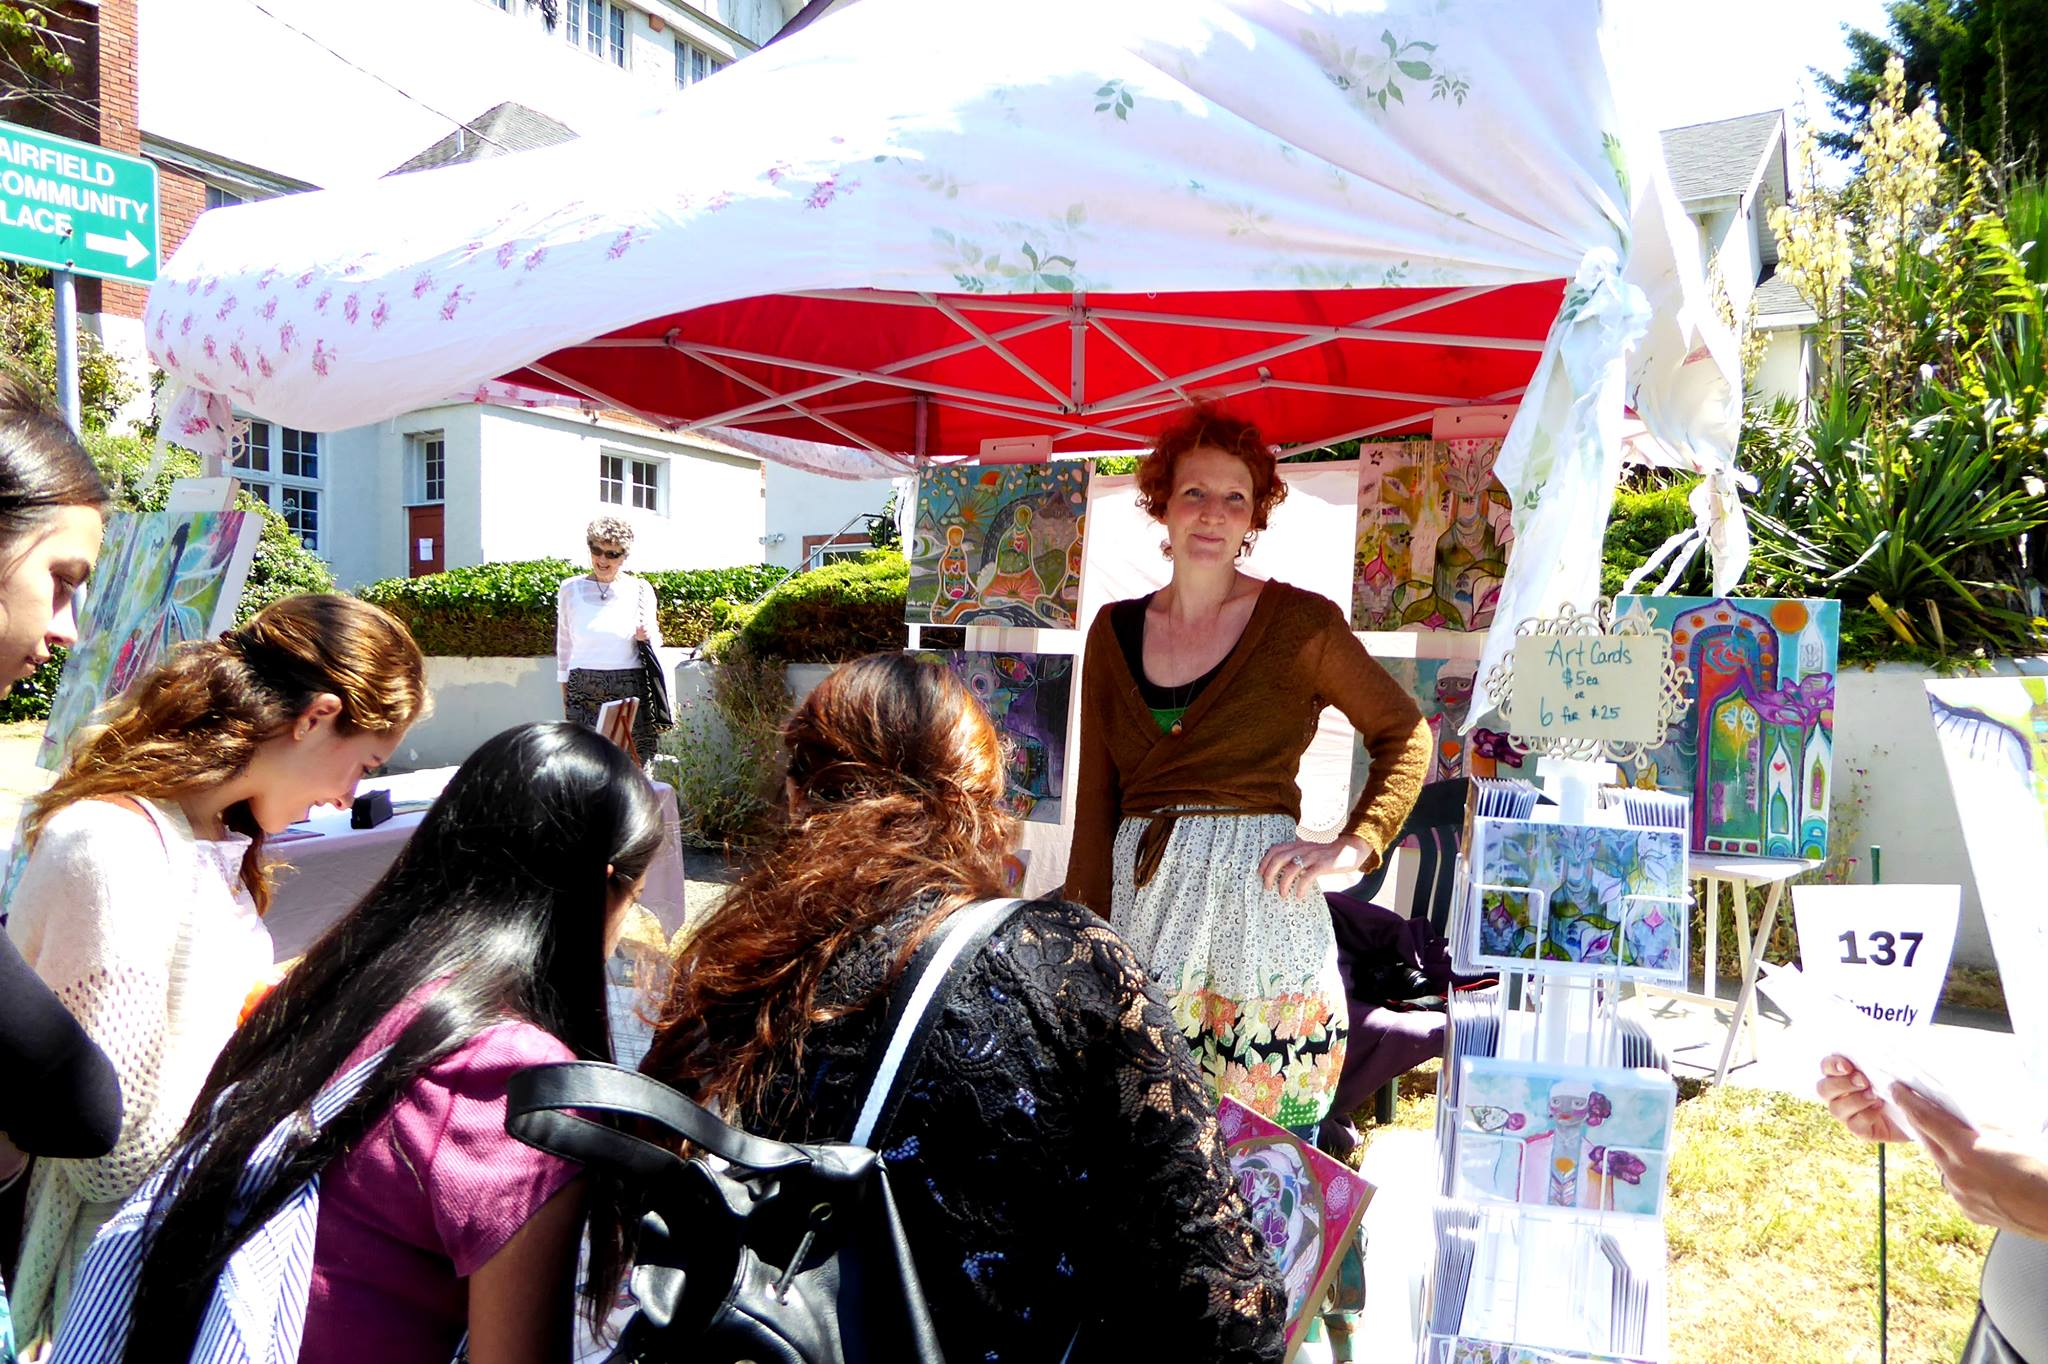 Kimberly Leslie at her art stand on art markets in Victoria